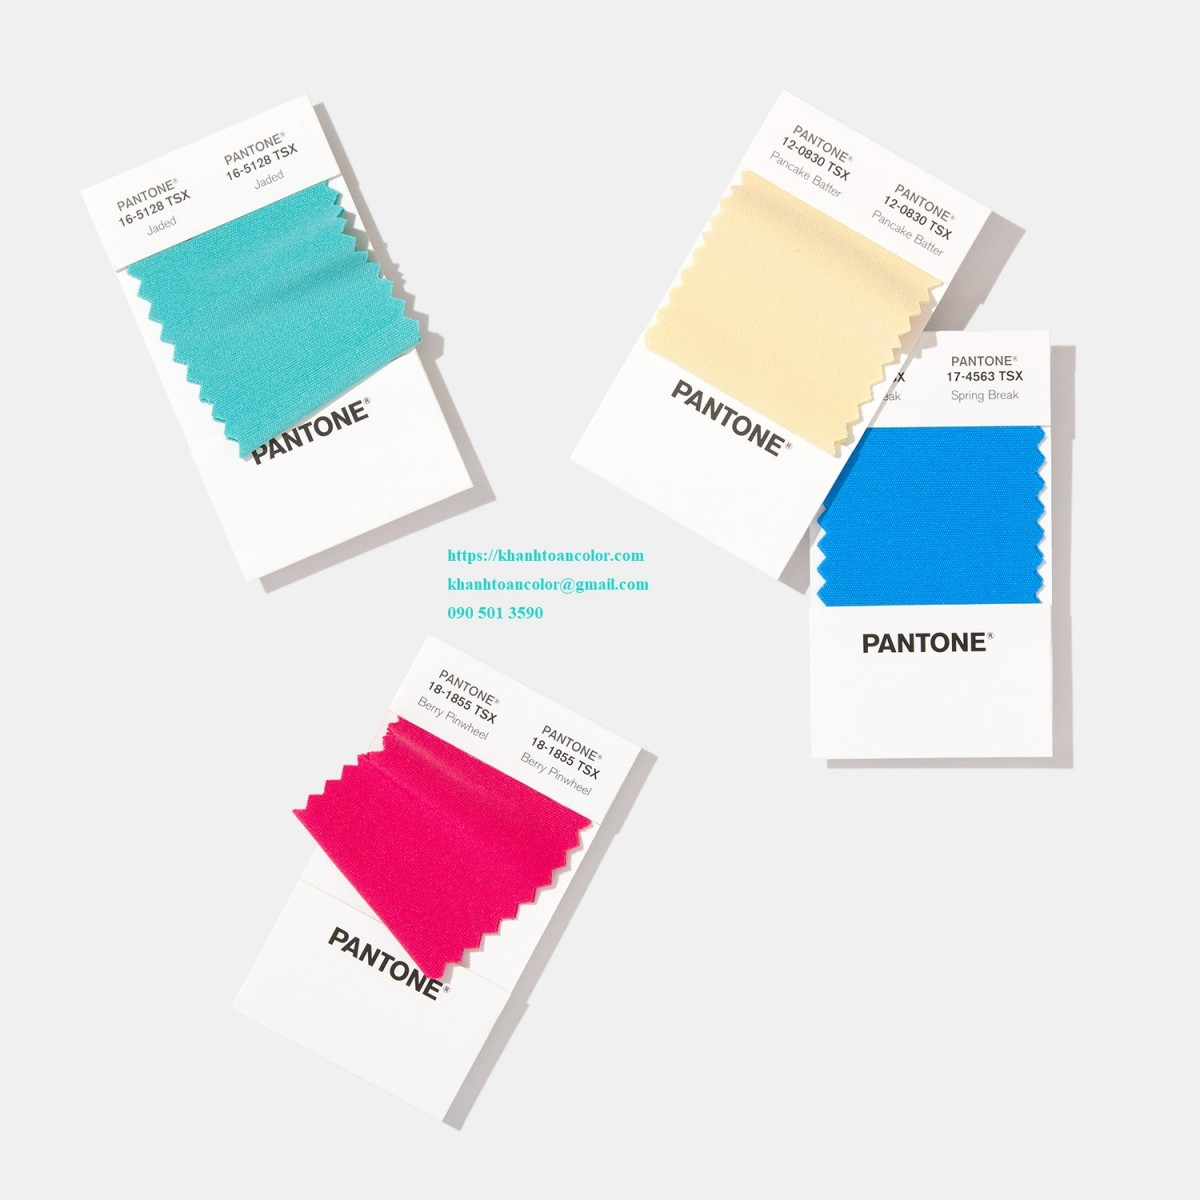 pantone mau FFS200-pantone-fashion-home-interiors-polyester-swatch-book-product-3